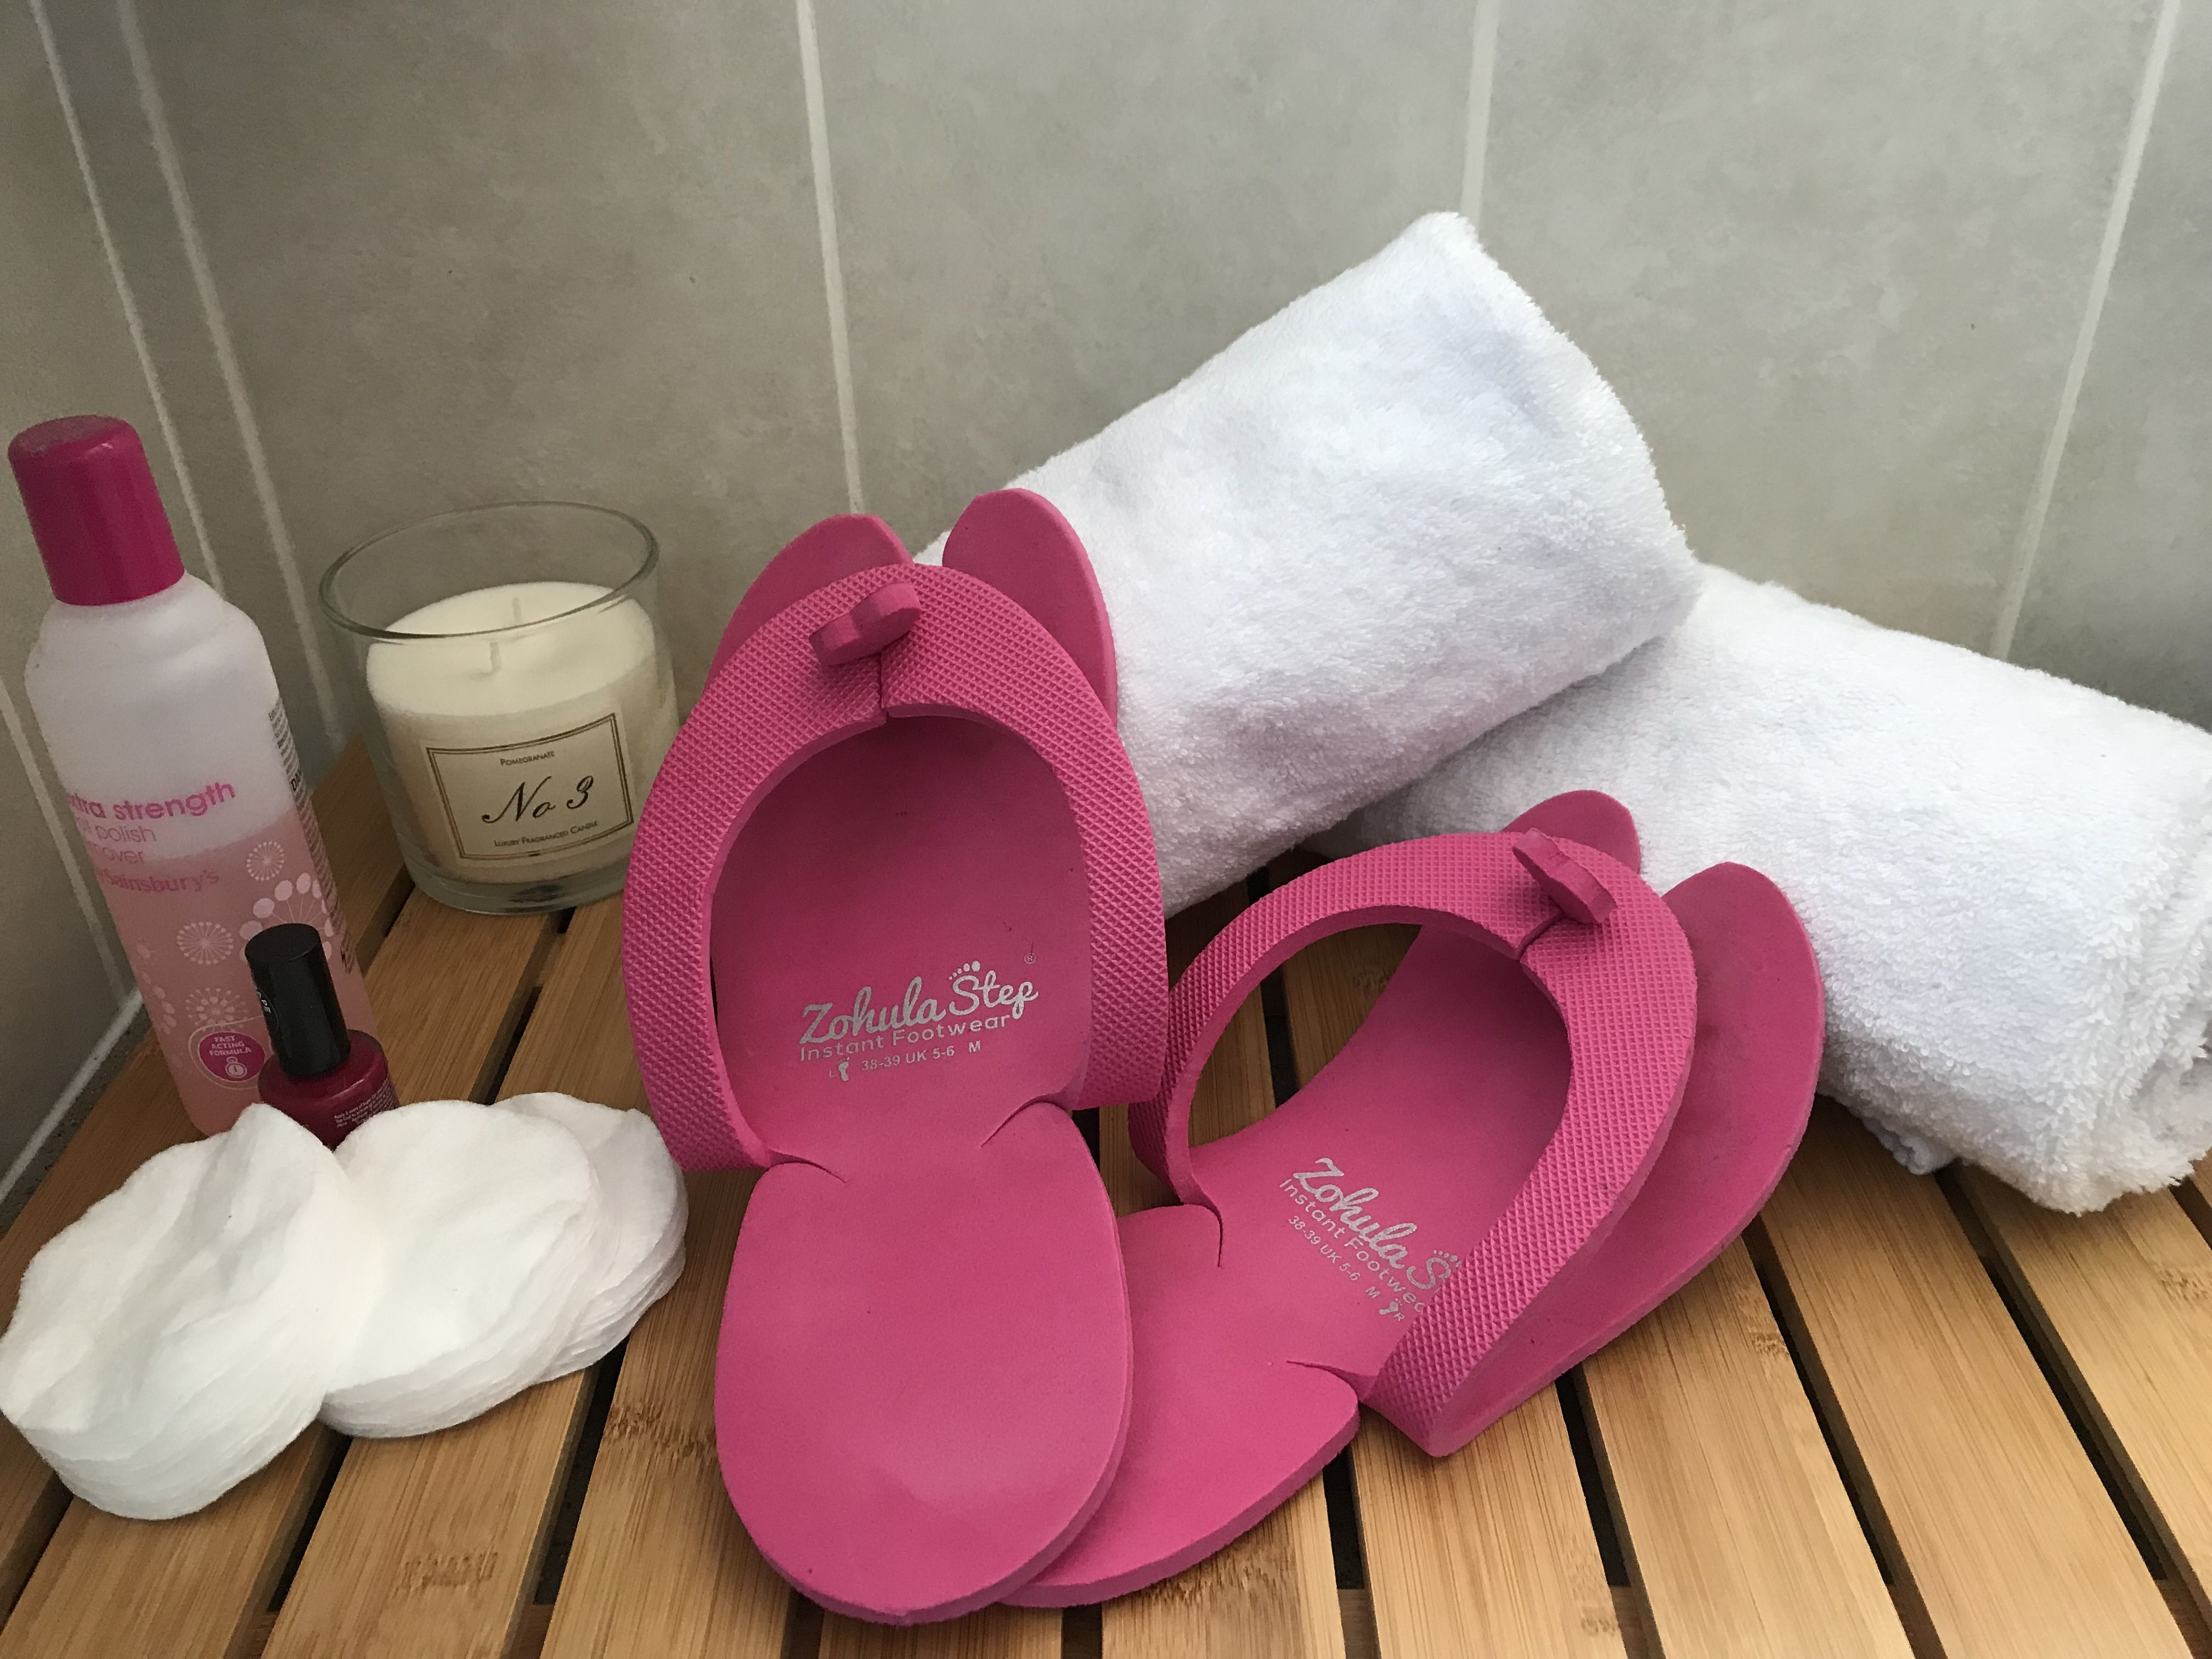 3b68fadf3ec6cb Zohula Step Flip Flops are a new and innovative product designed and  manufactured exclusively by Zohula